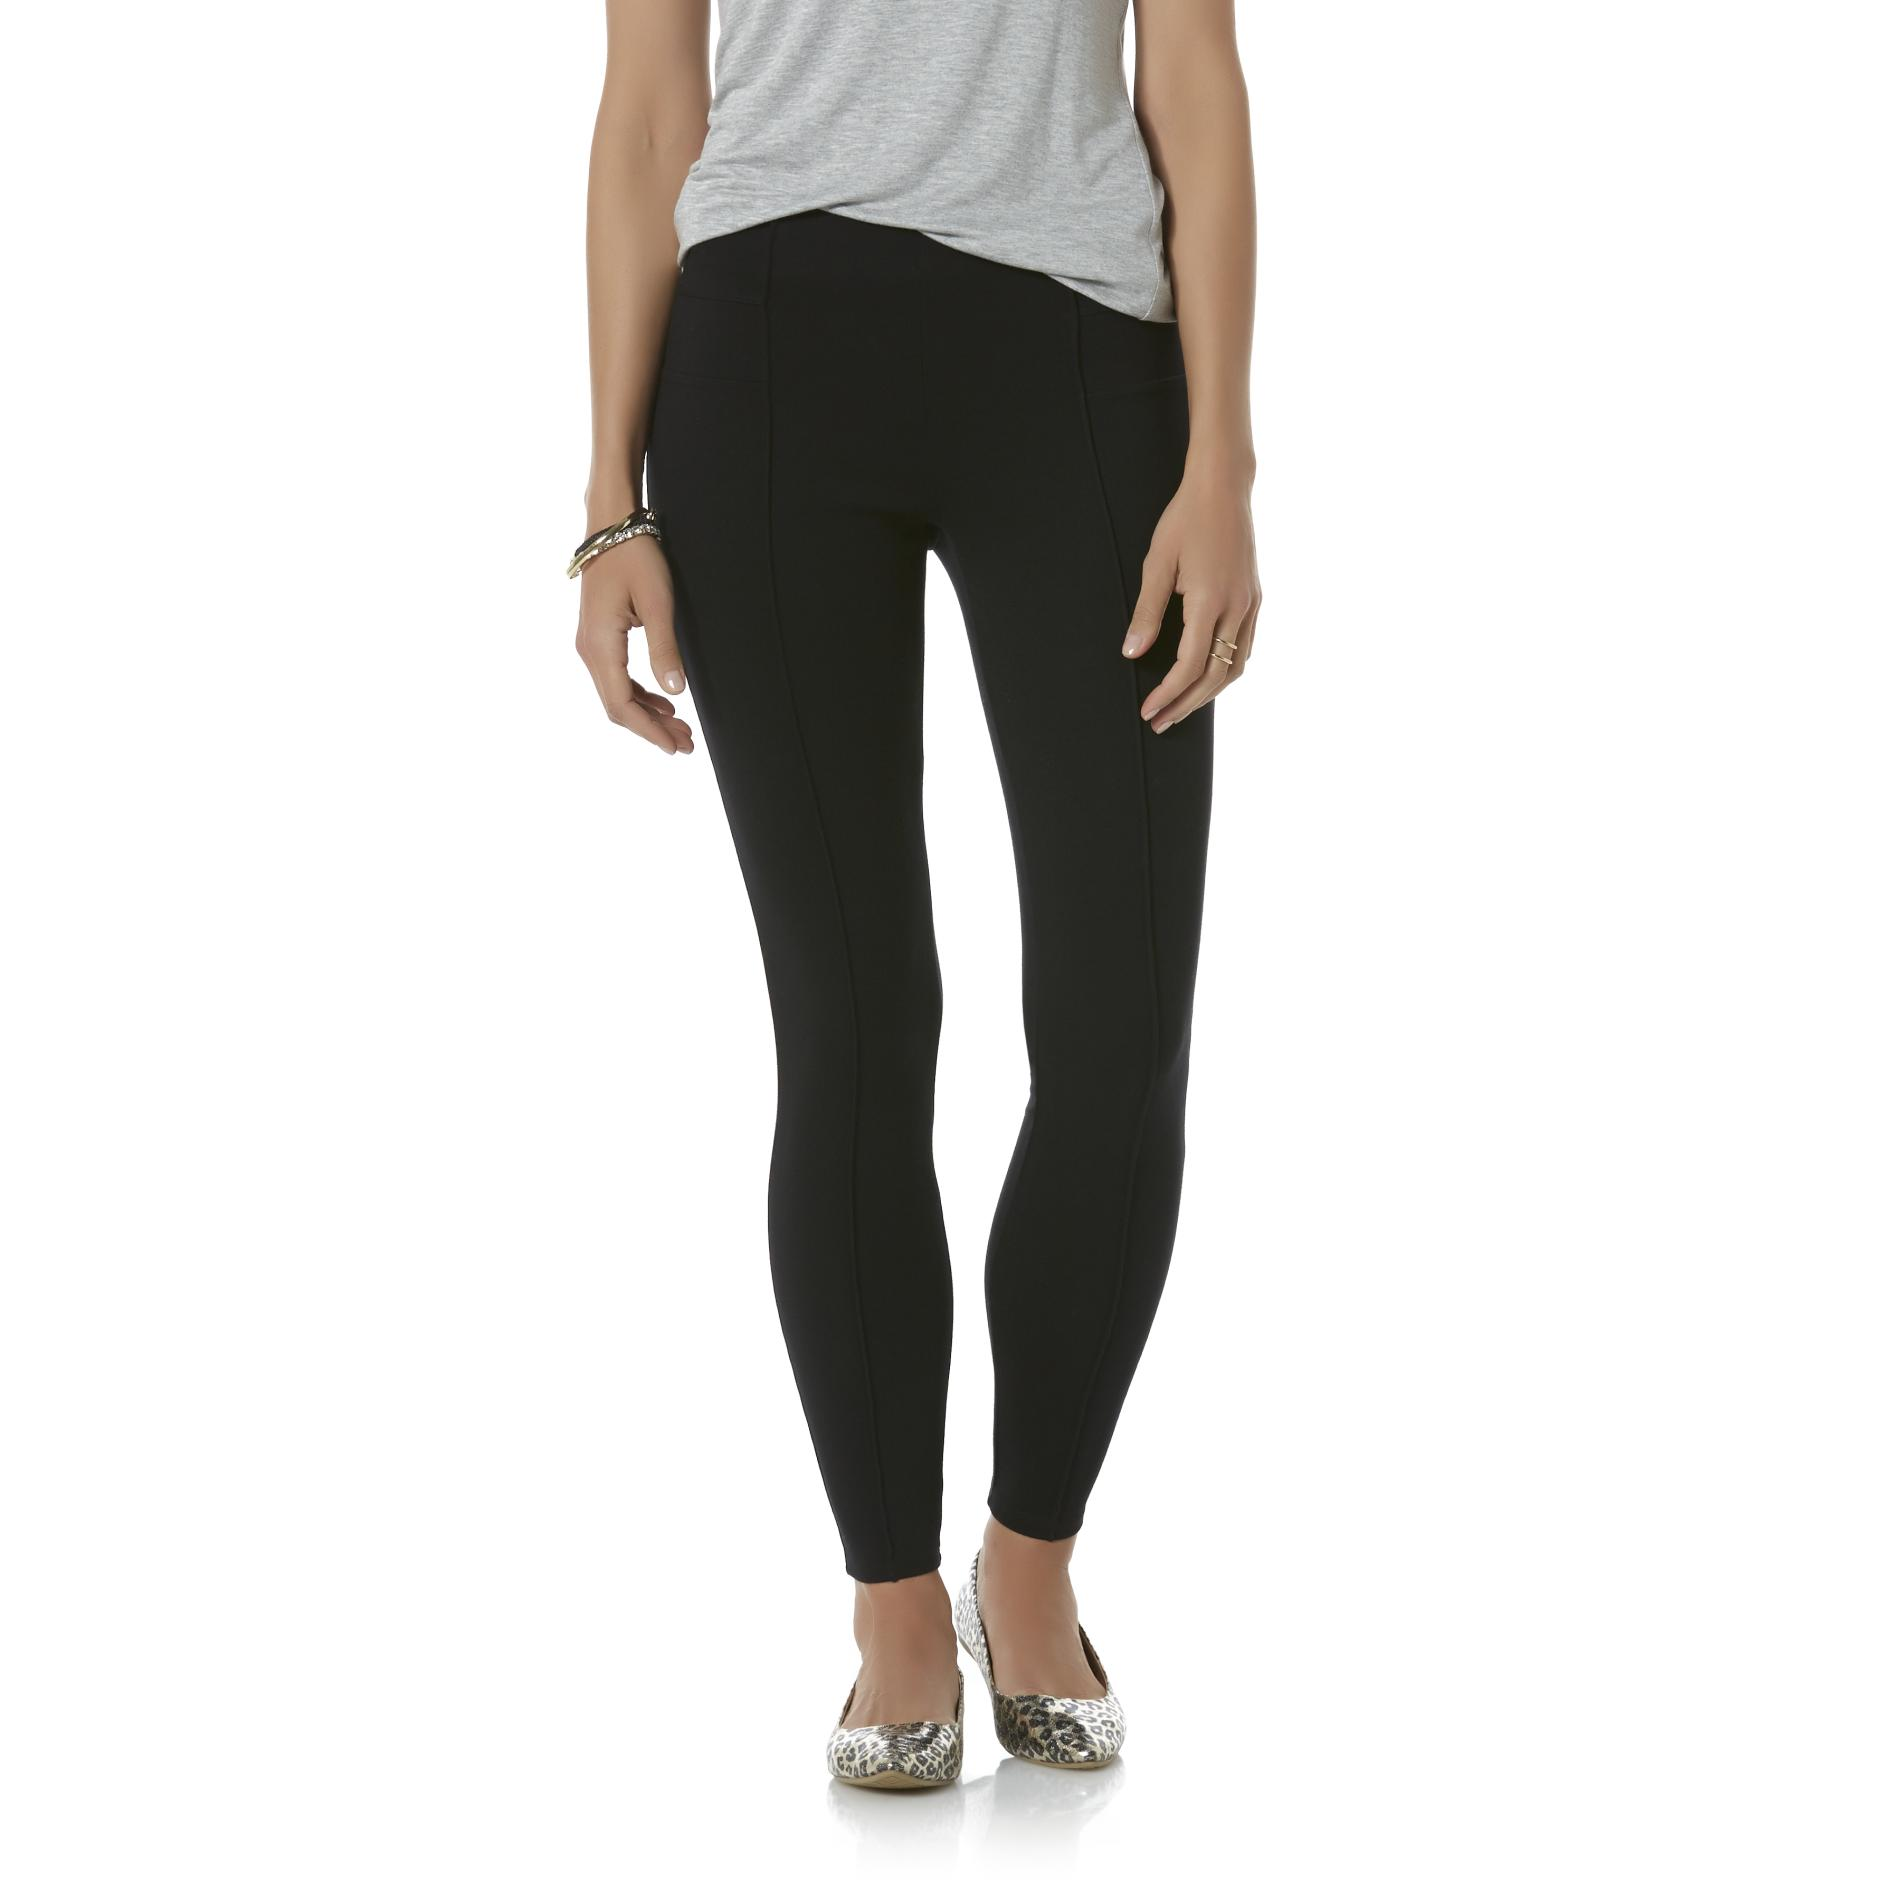 Simply Styled Women' Ponte Knit Pants